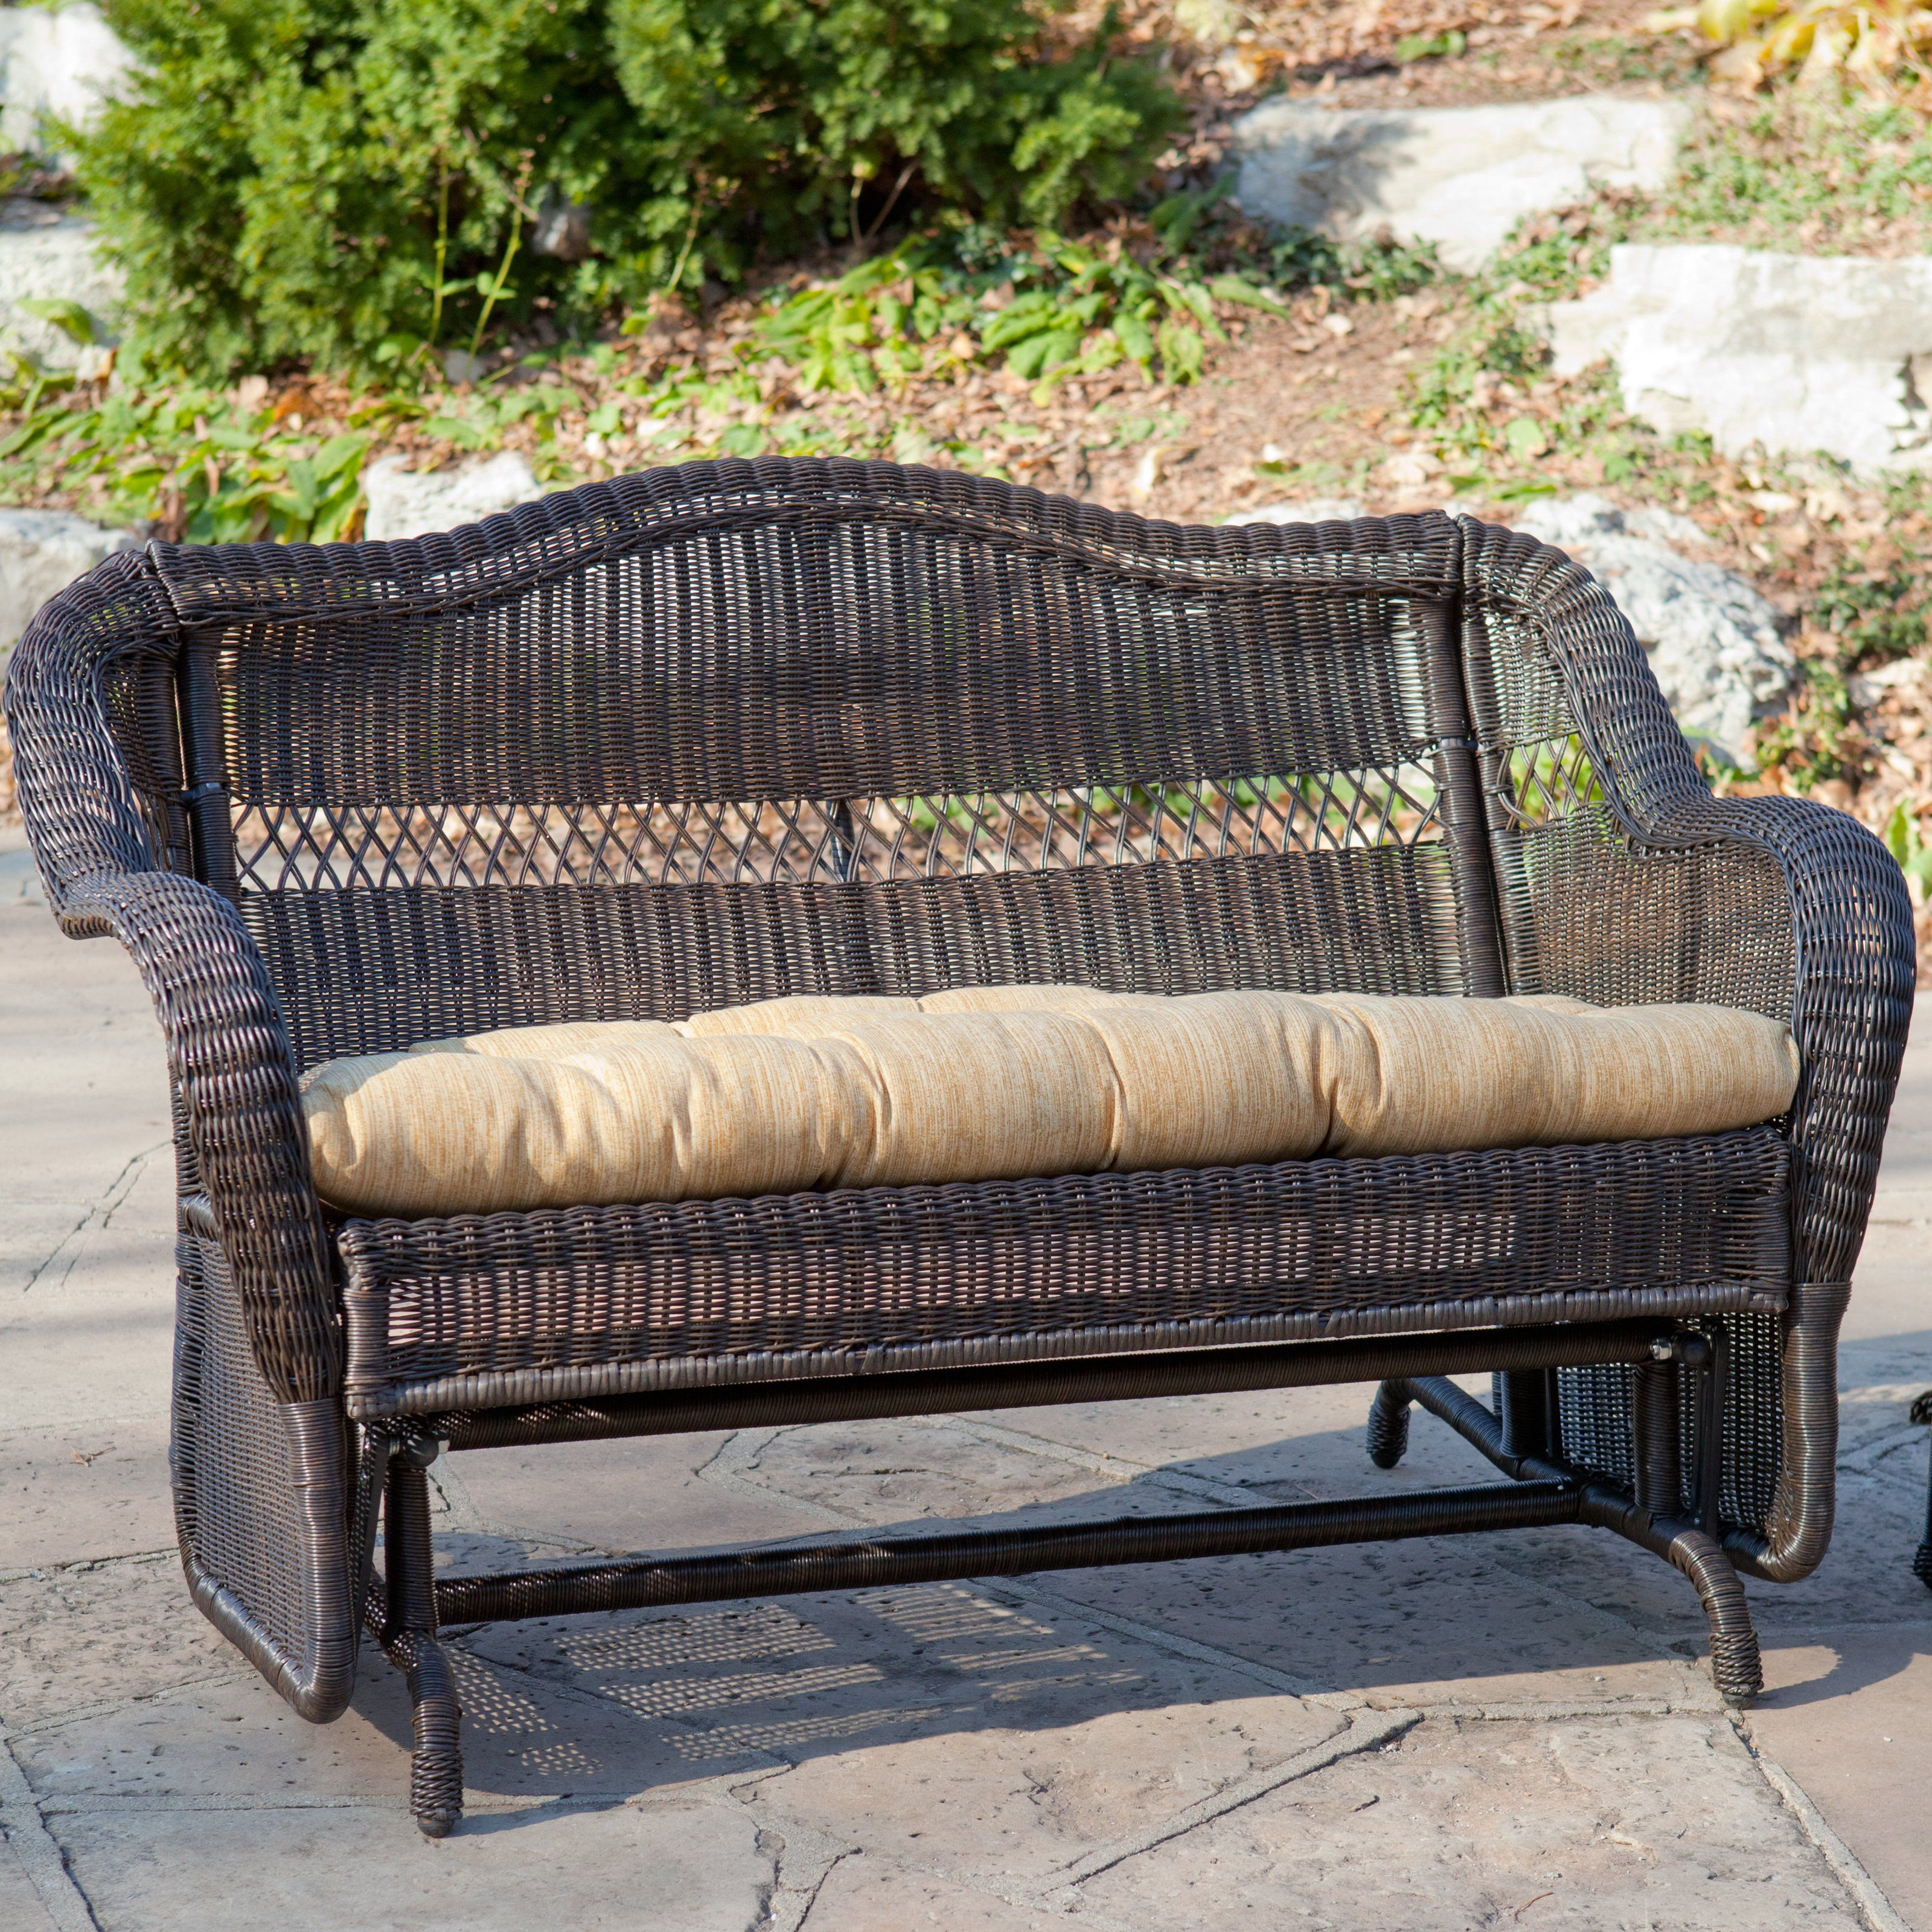 Have To Have It Casco Bay Resin Wicker Double Glider With Optional Cushion Espresso 349 98 Outdoor Glider Outdoor Cushions Outdoor